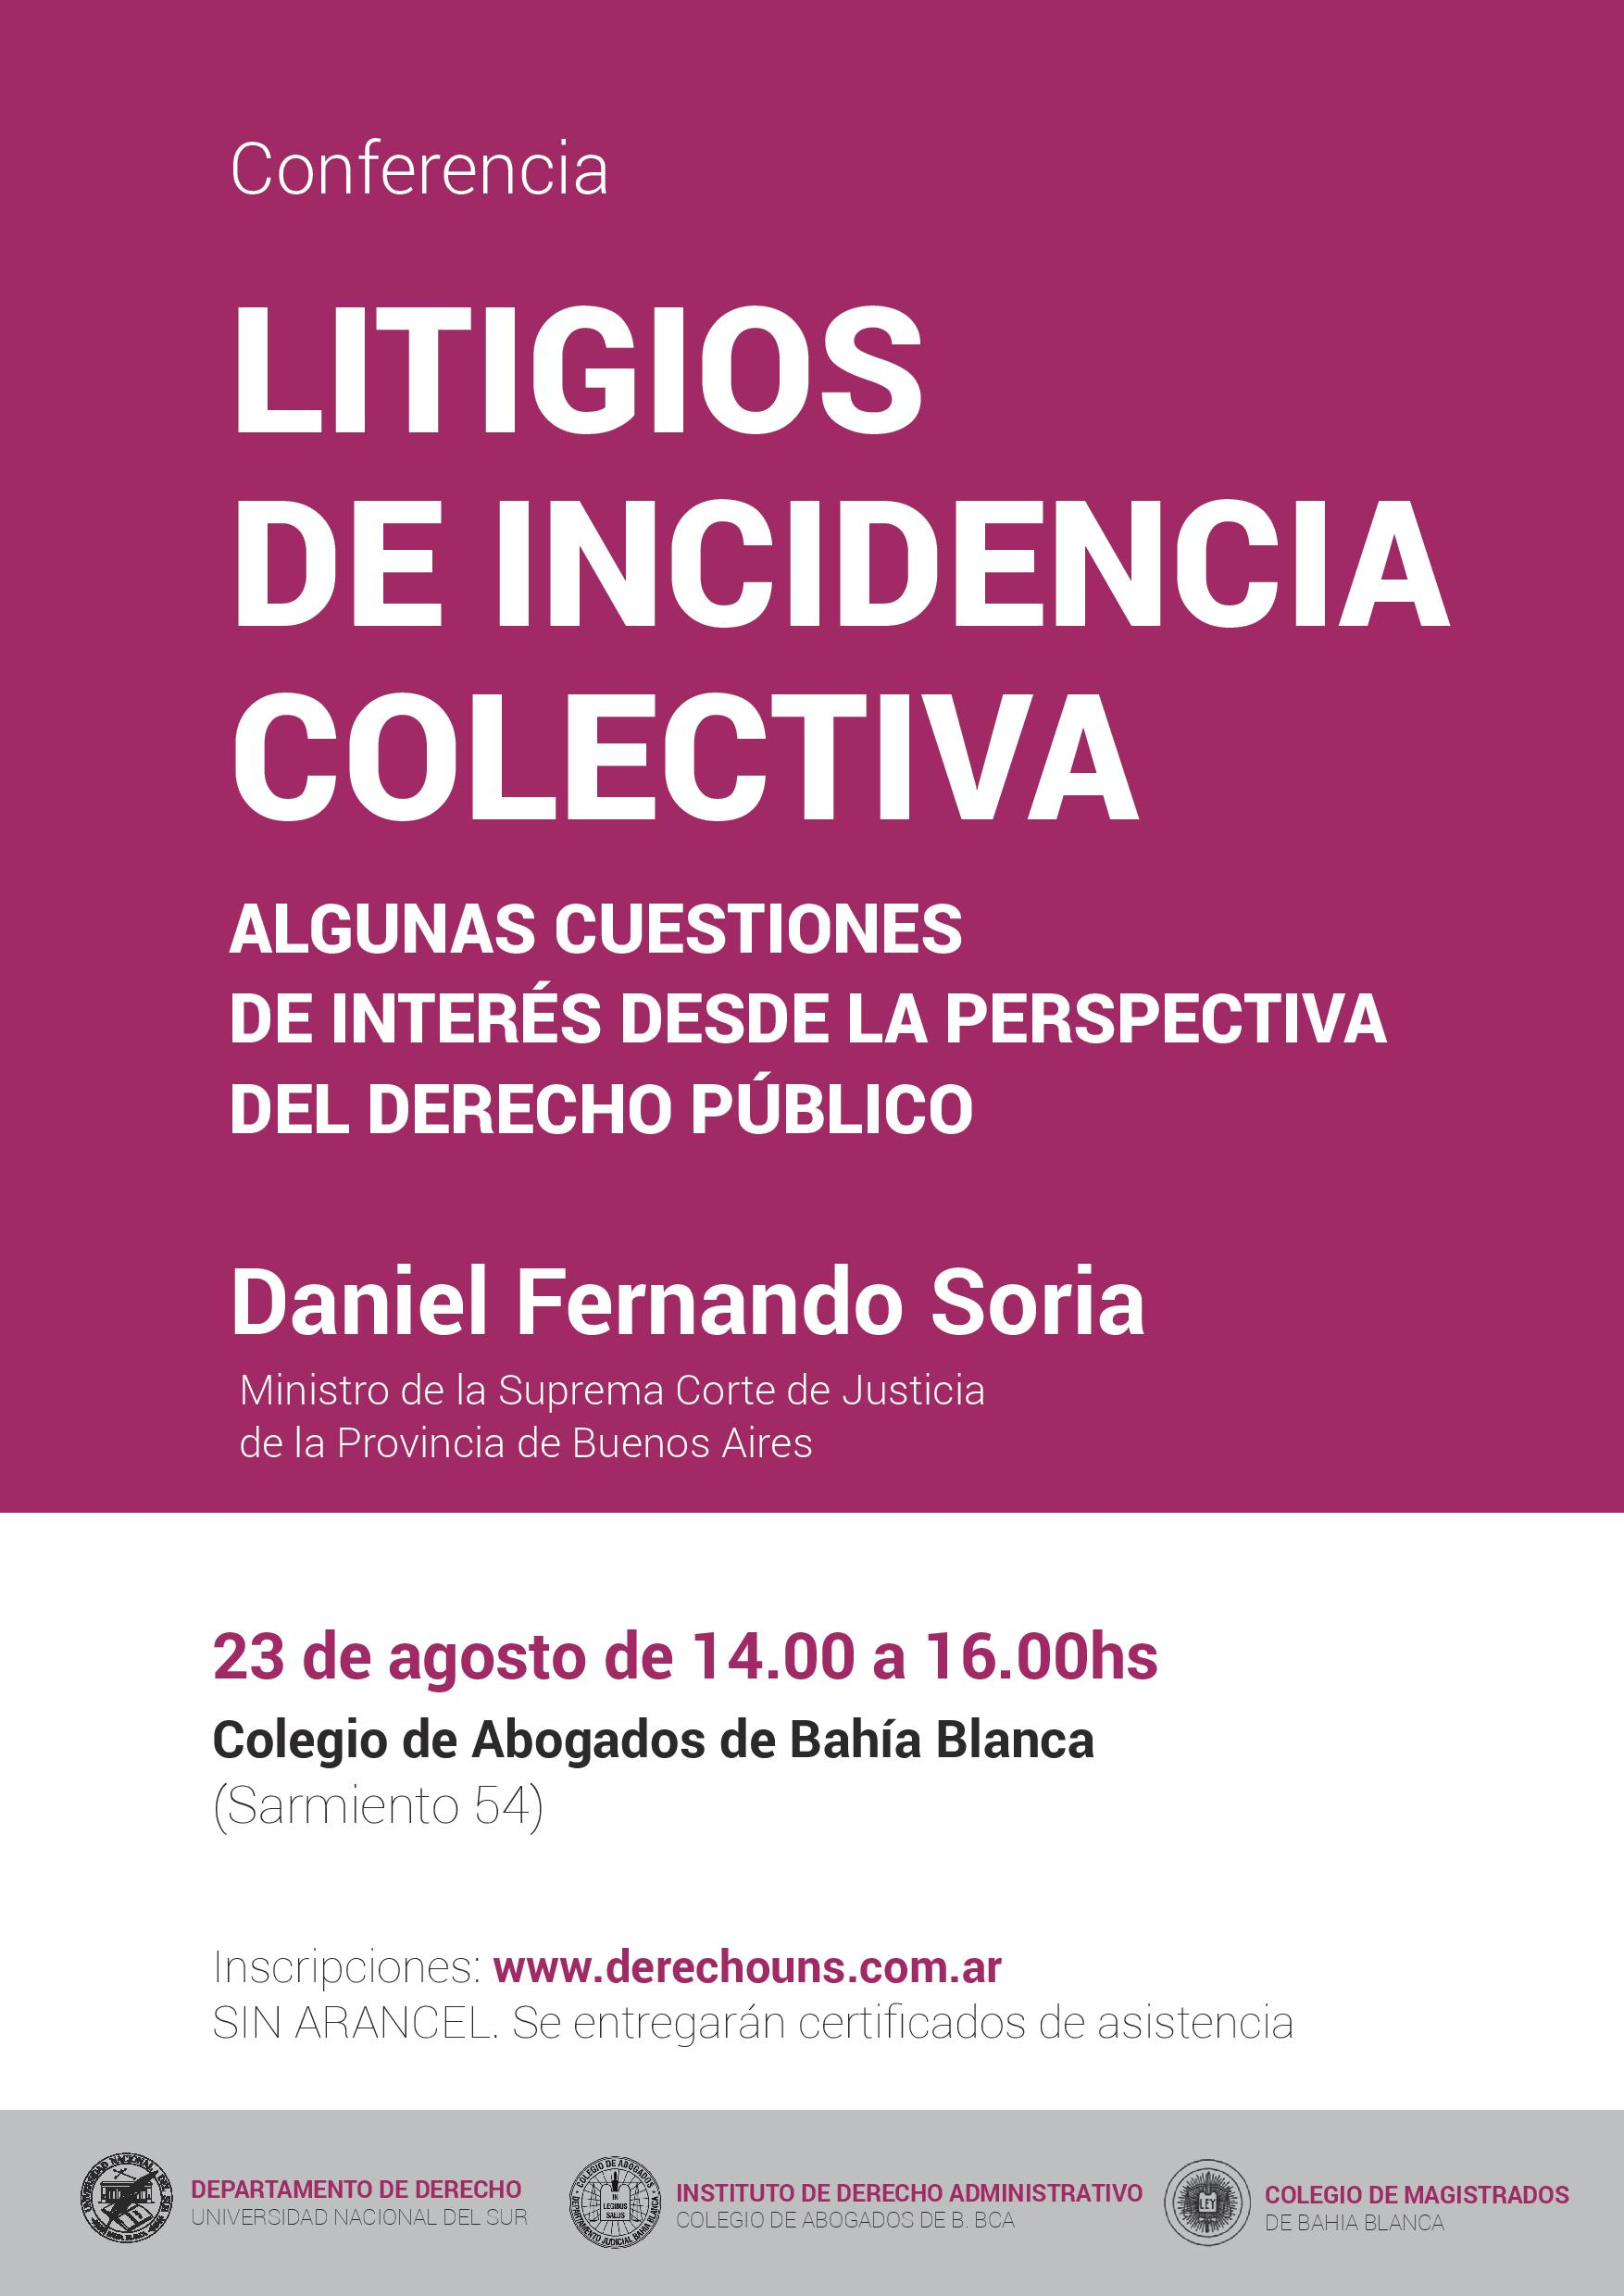 Conferencia-Litigios-Incidencia-Colectiva